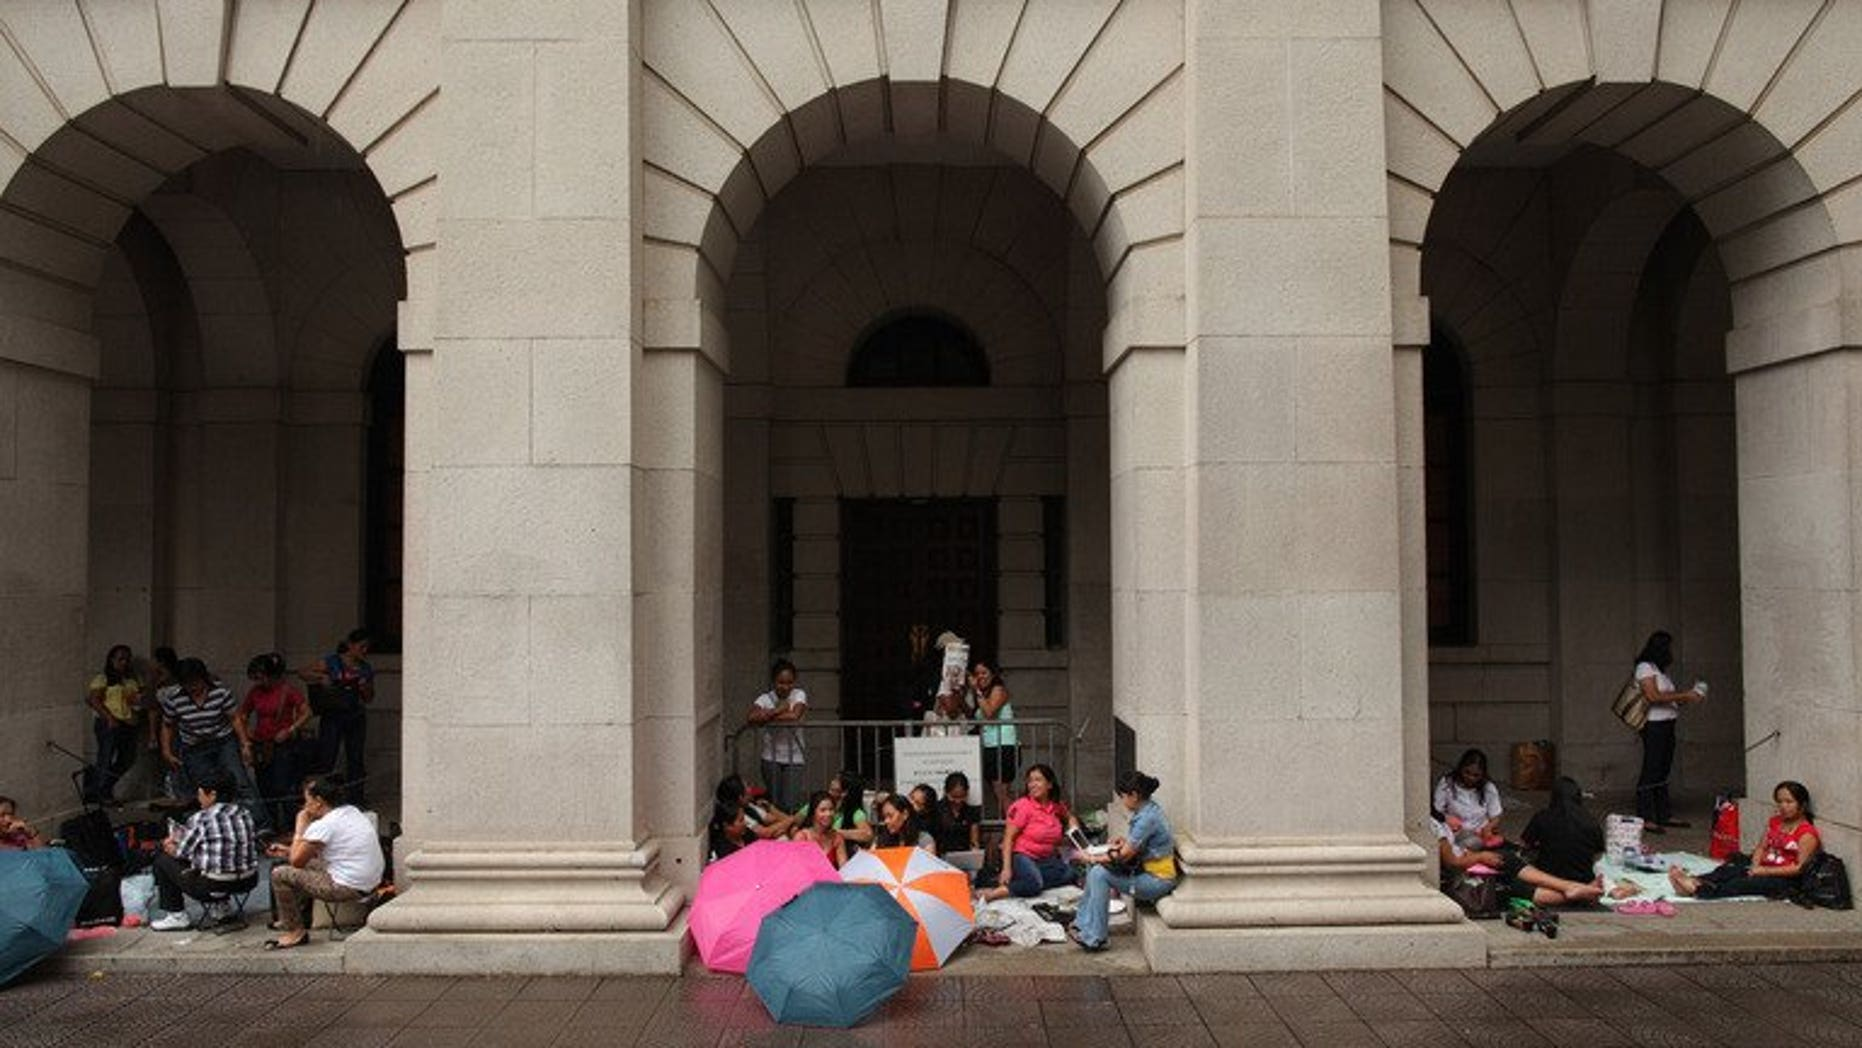 Foreign domestic helpers sit beneath the arches of the former Legislative Council building in Hong Kong on October 2, 2011. A Hong Kong couple left their Indonesian domestic helper without food or water after tying her to a chair and forcing her to wear a diaper while they went on five-day vacation, a report said Saturday.